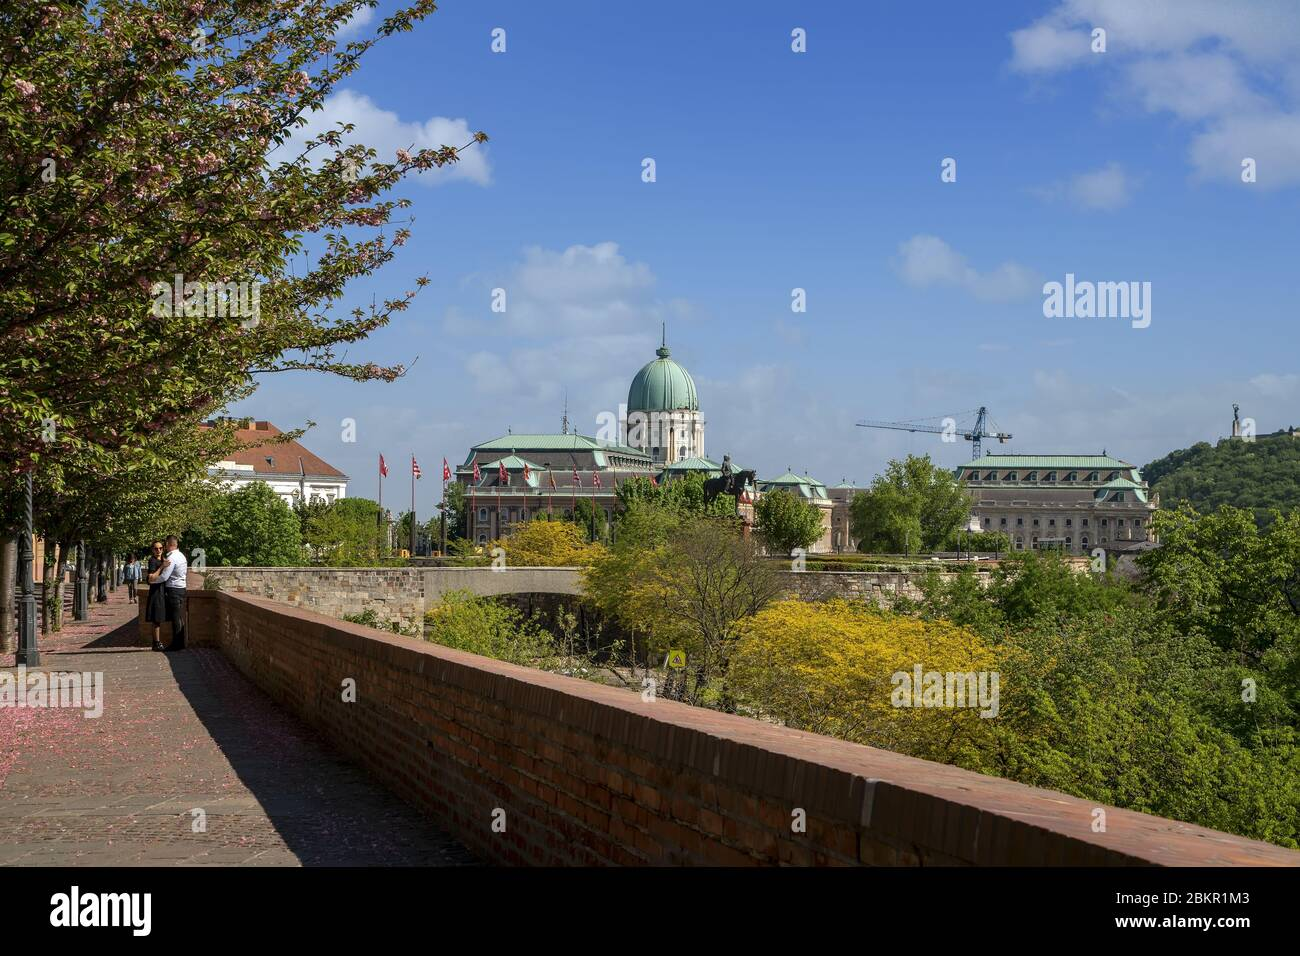 The popular Toth Arpad Promenade in Buda castle district in spring time. Buda Castle Royal Palace at background.Budapest,Hungary,Europe. Stock Photo